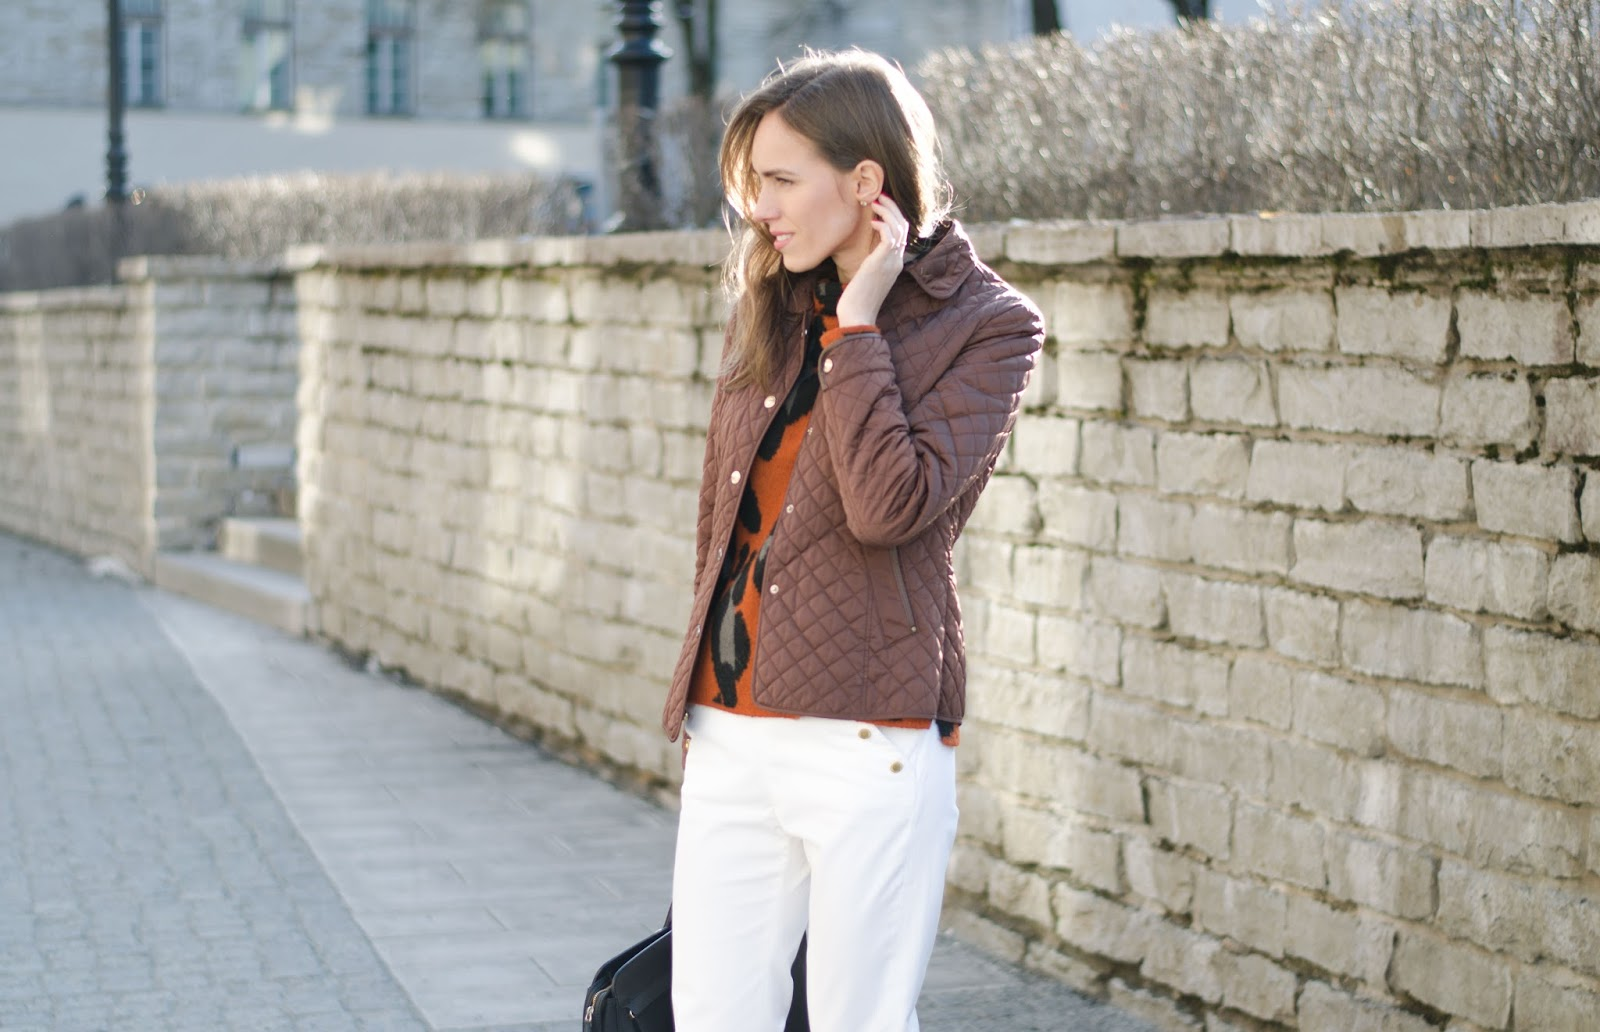 kristjaana mere brown jacket white pants spring fashion